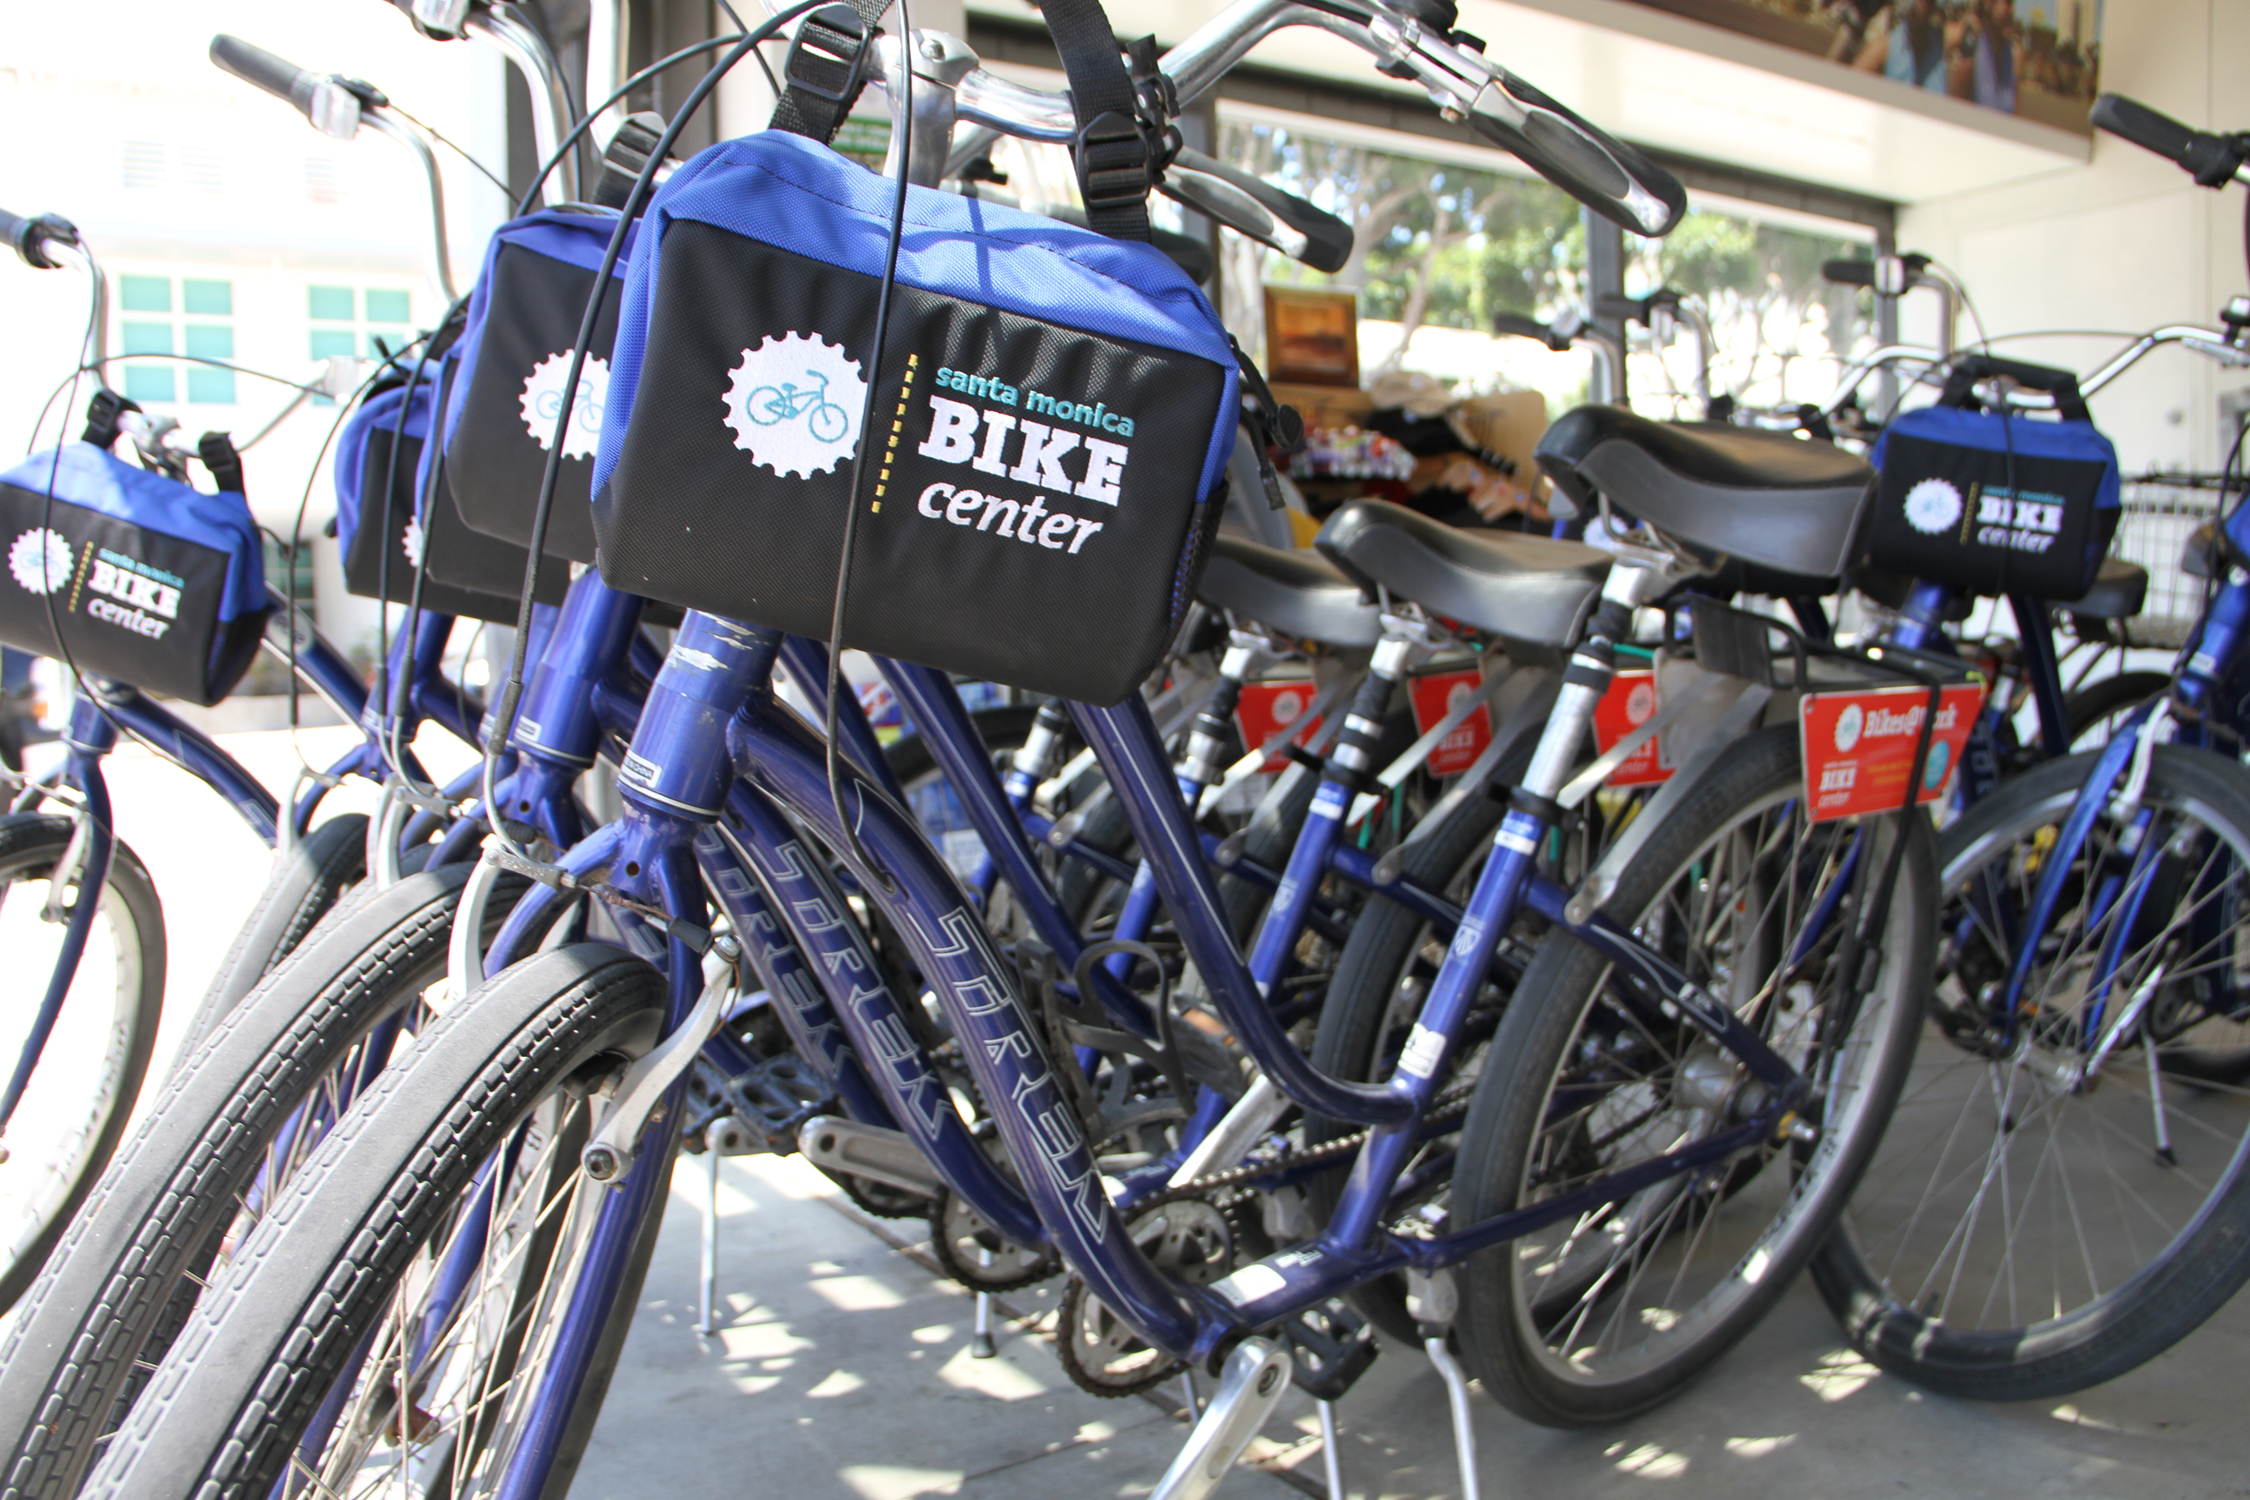 The Santa Monica Bike Center is enticing commuters to give up their cars by giving them a free bike to use for two weeks.